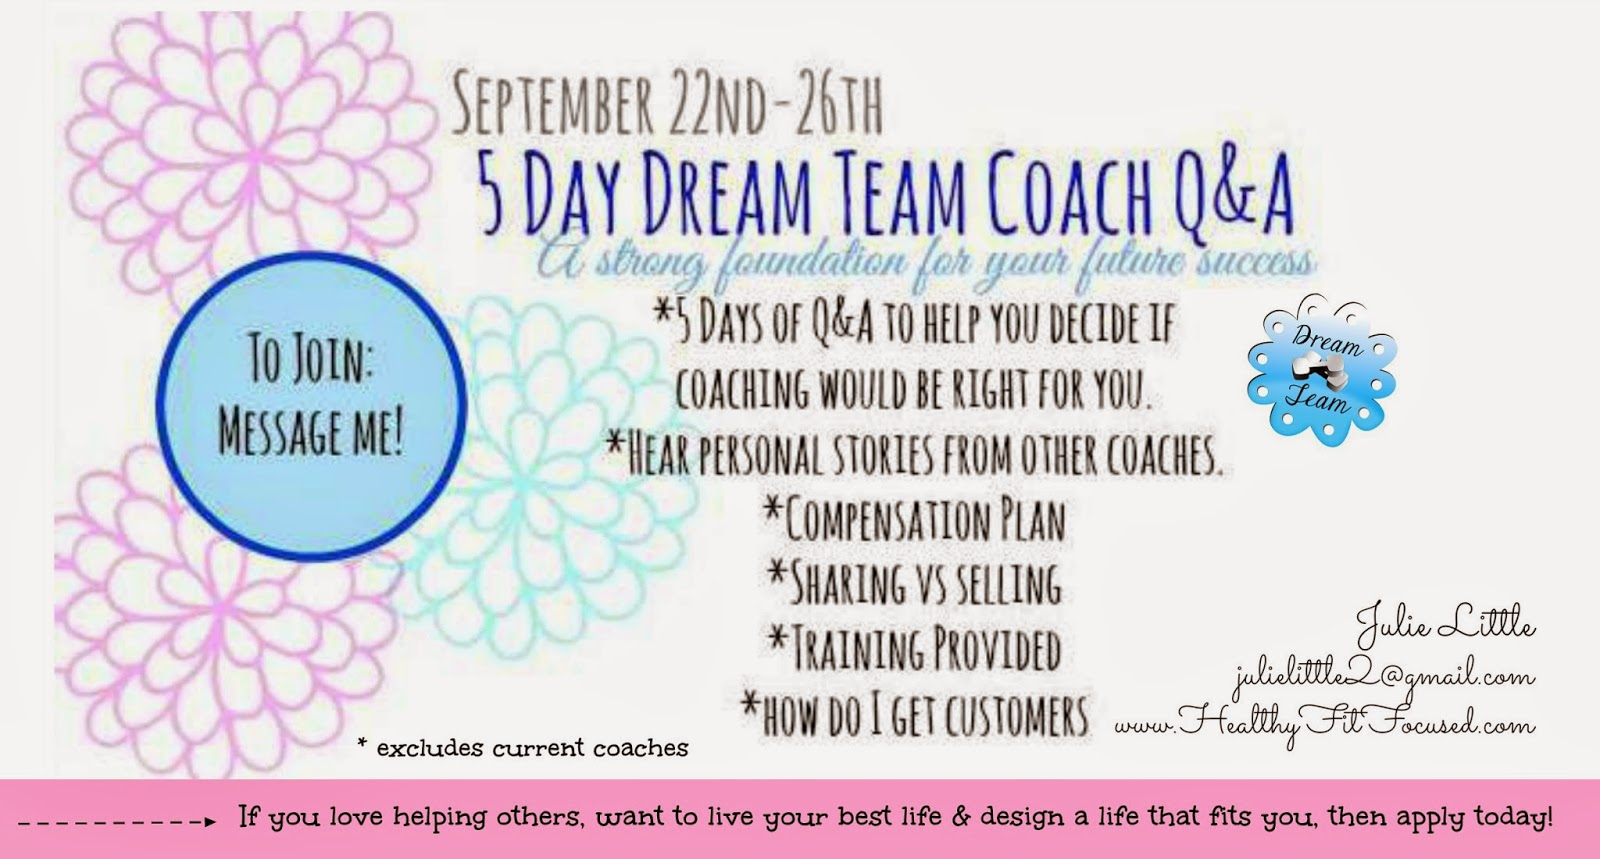 Beachbody Coaching Opportunity, What is a Beachbody Coach, Q & A, Julie Little, www.HealthyFitFocused.com